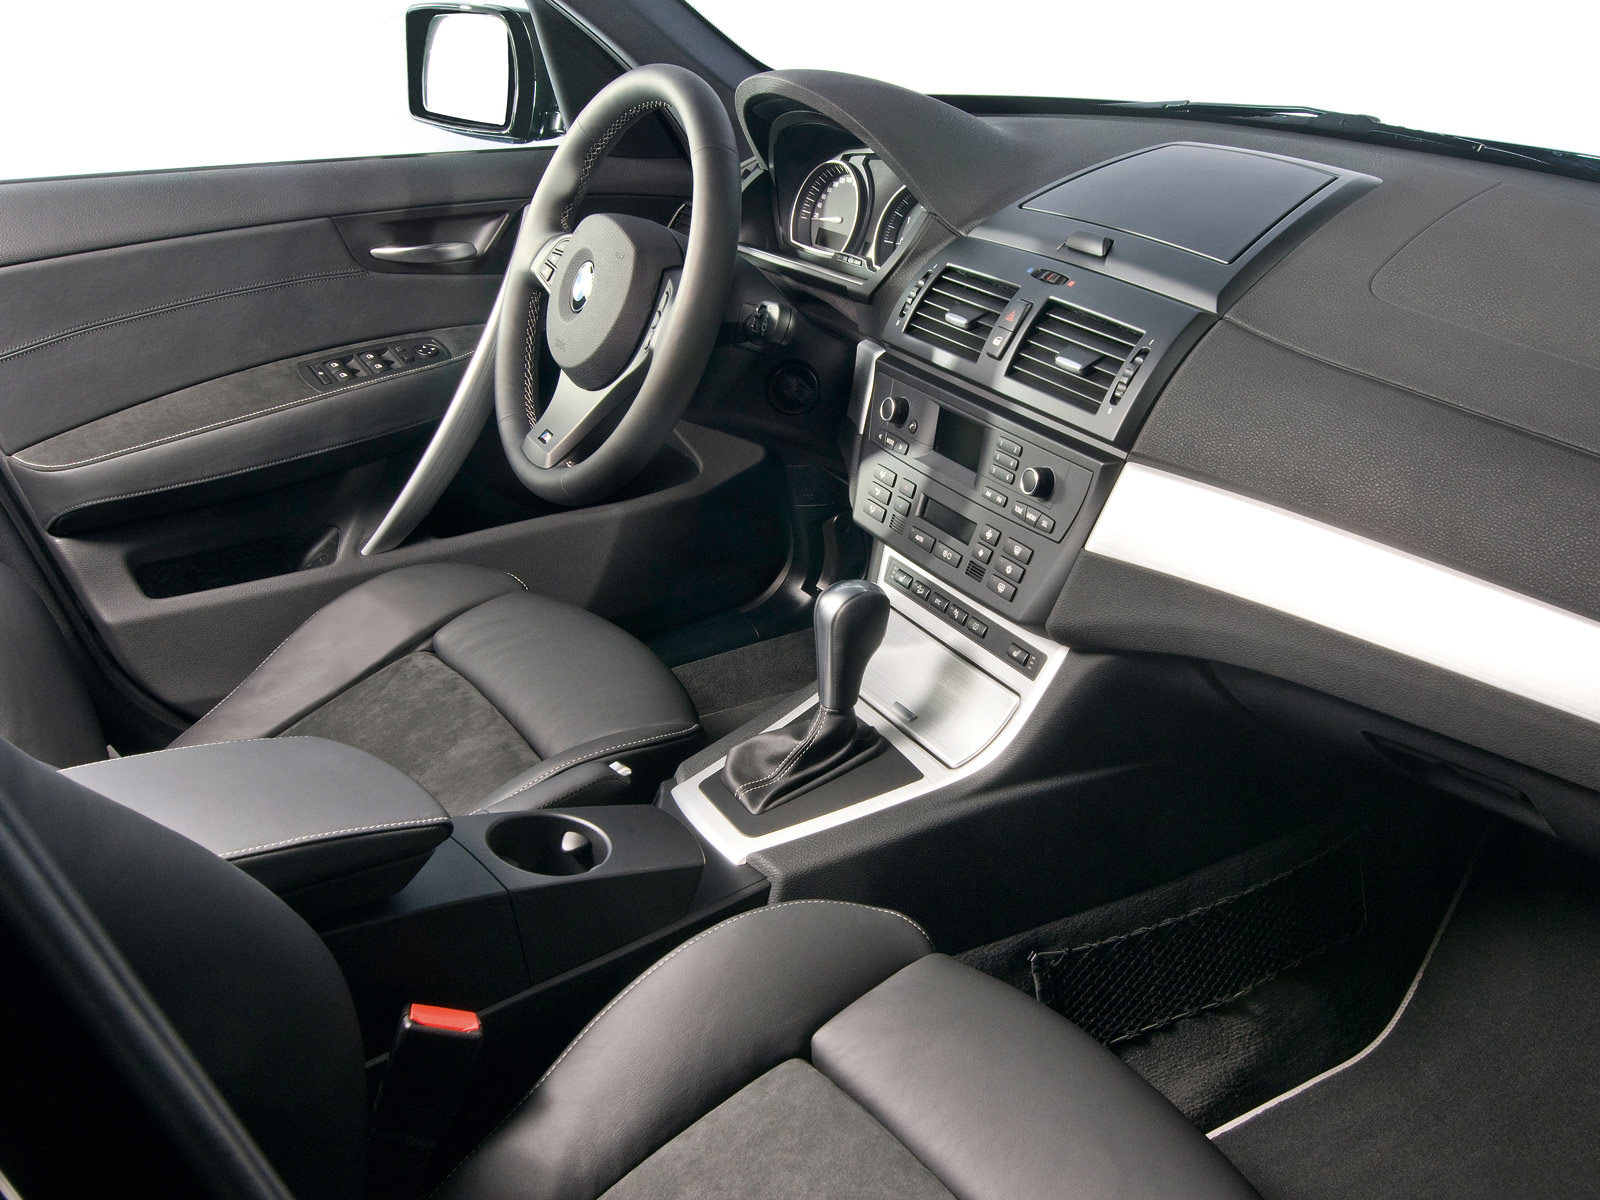 Mobil BMW X3 Limited Sport Edition 2009